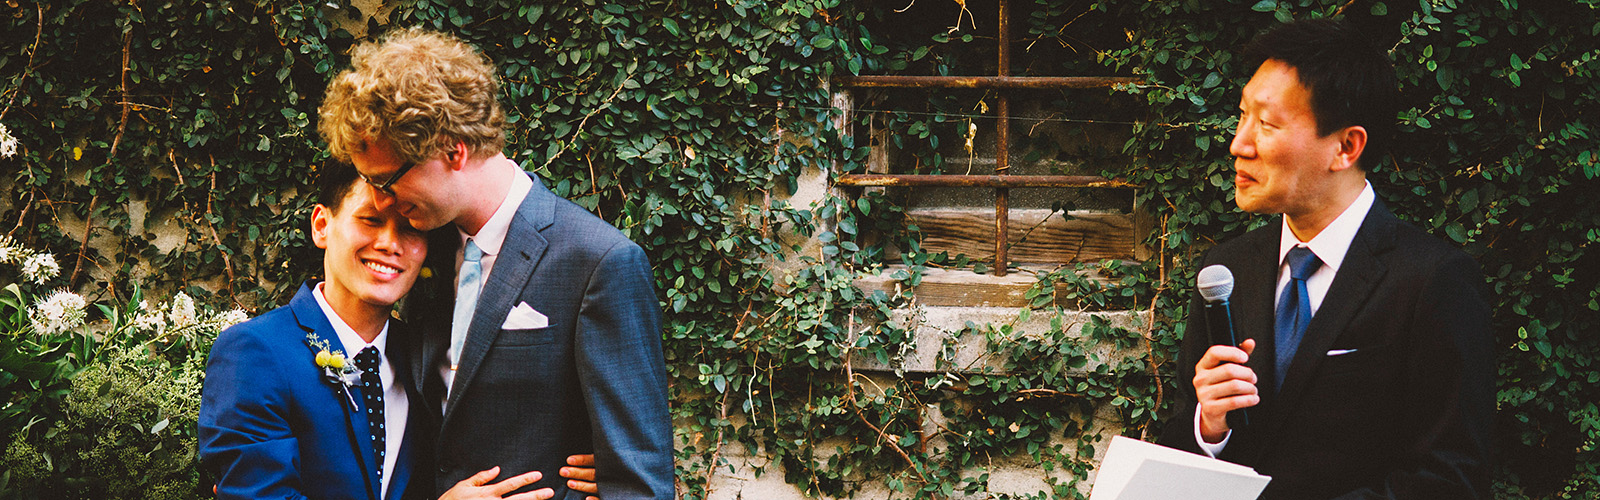 Portland wedding photographer reviews - Hung and Adrian's San Francisco Gay Wedding